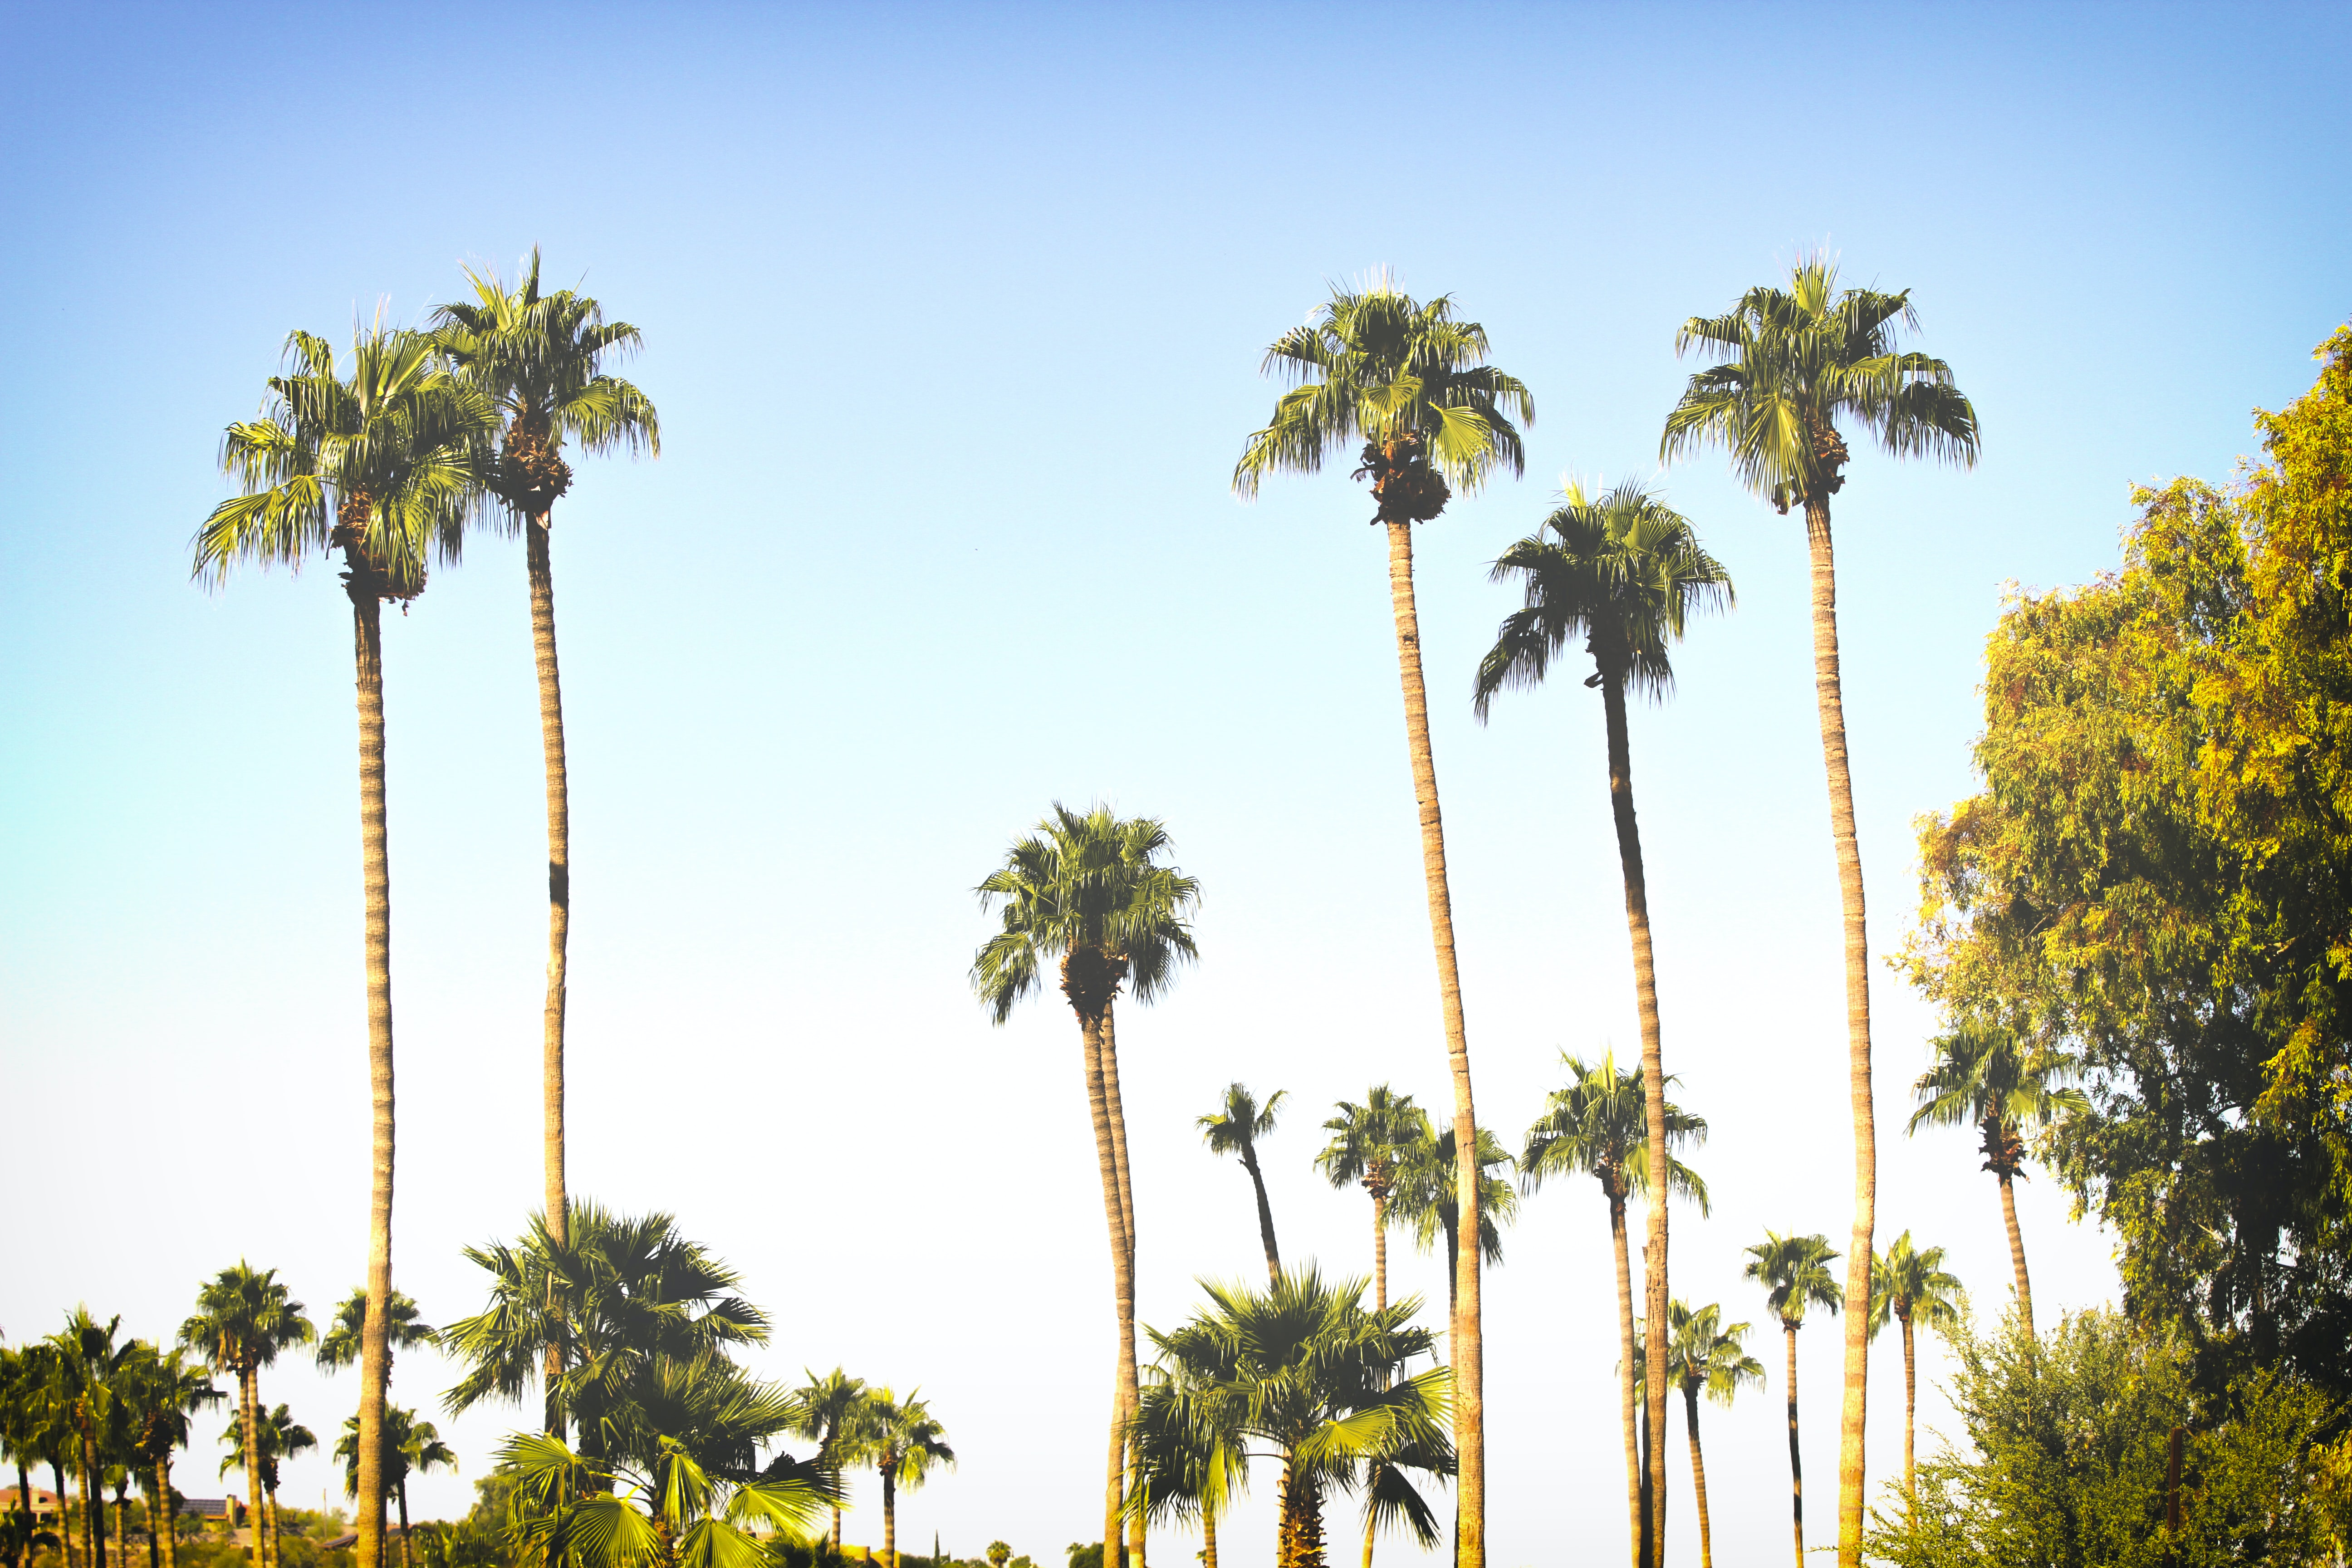 palm trees under clear blue sky